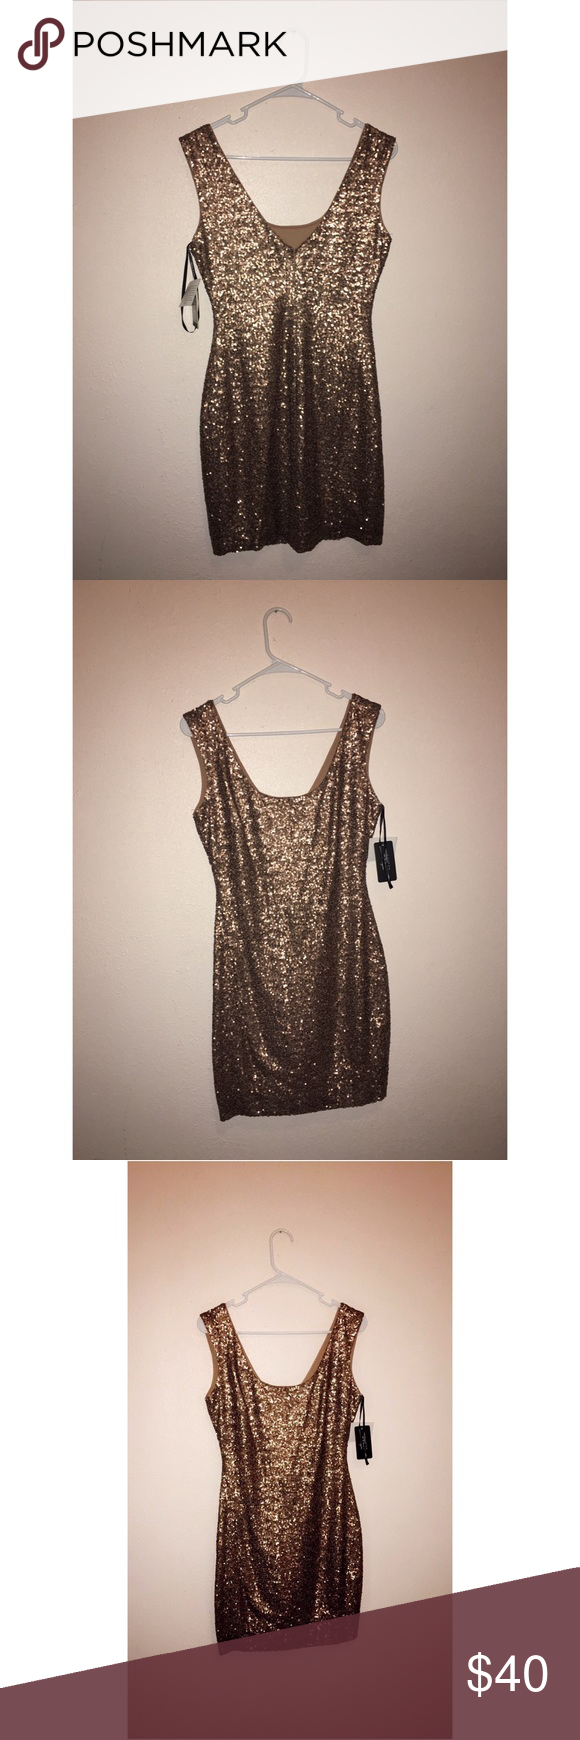 """""""LORI"""" Gld gold dress size 4 by GUESS. Brand new never worn still has tags, super cute! Make offer. G by Guess Dresses"""